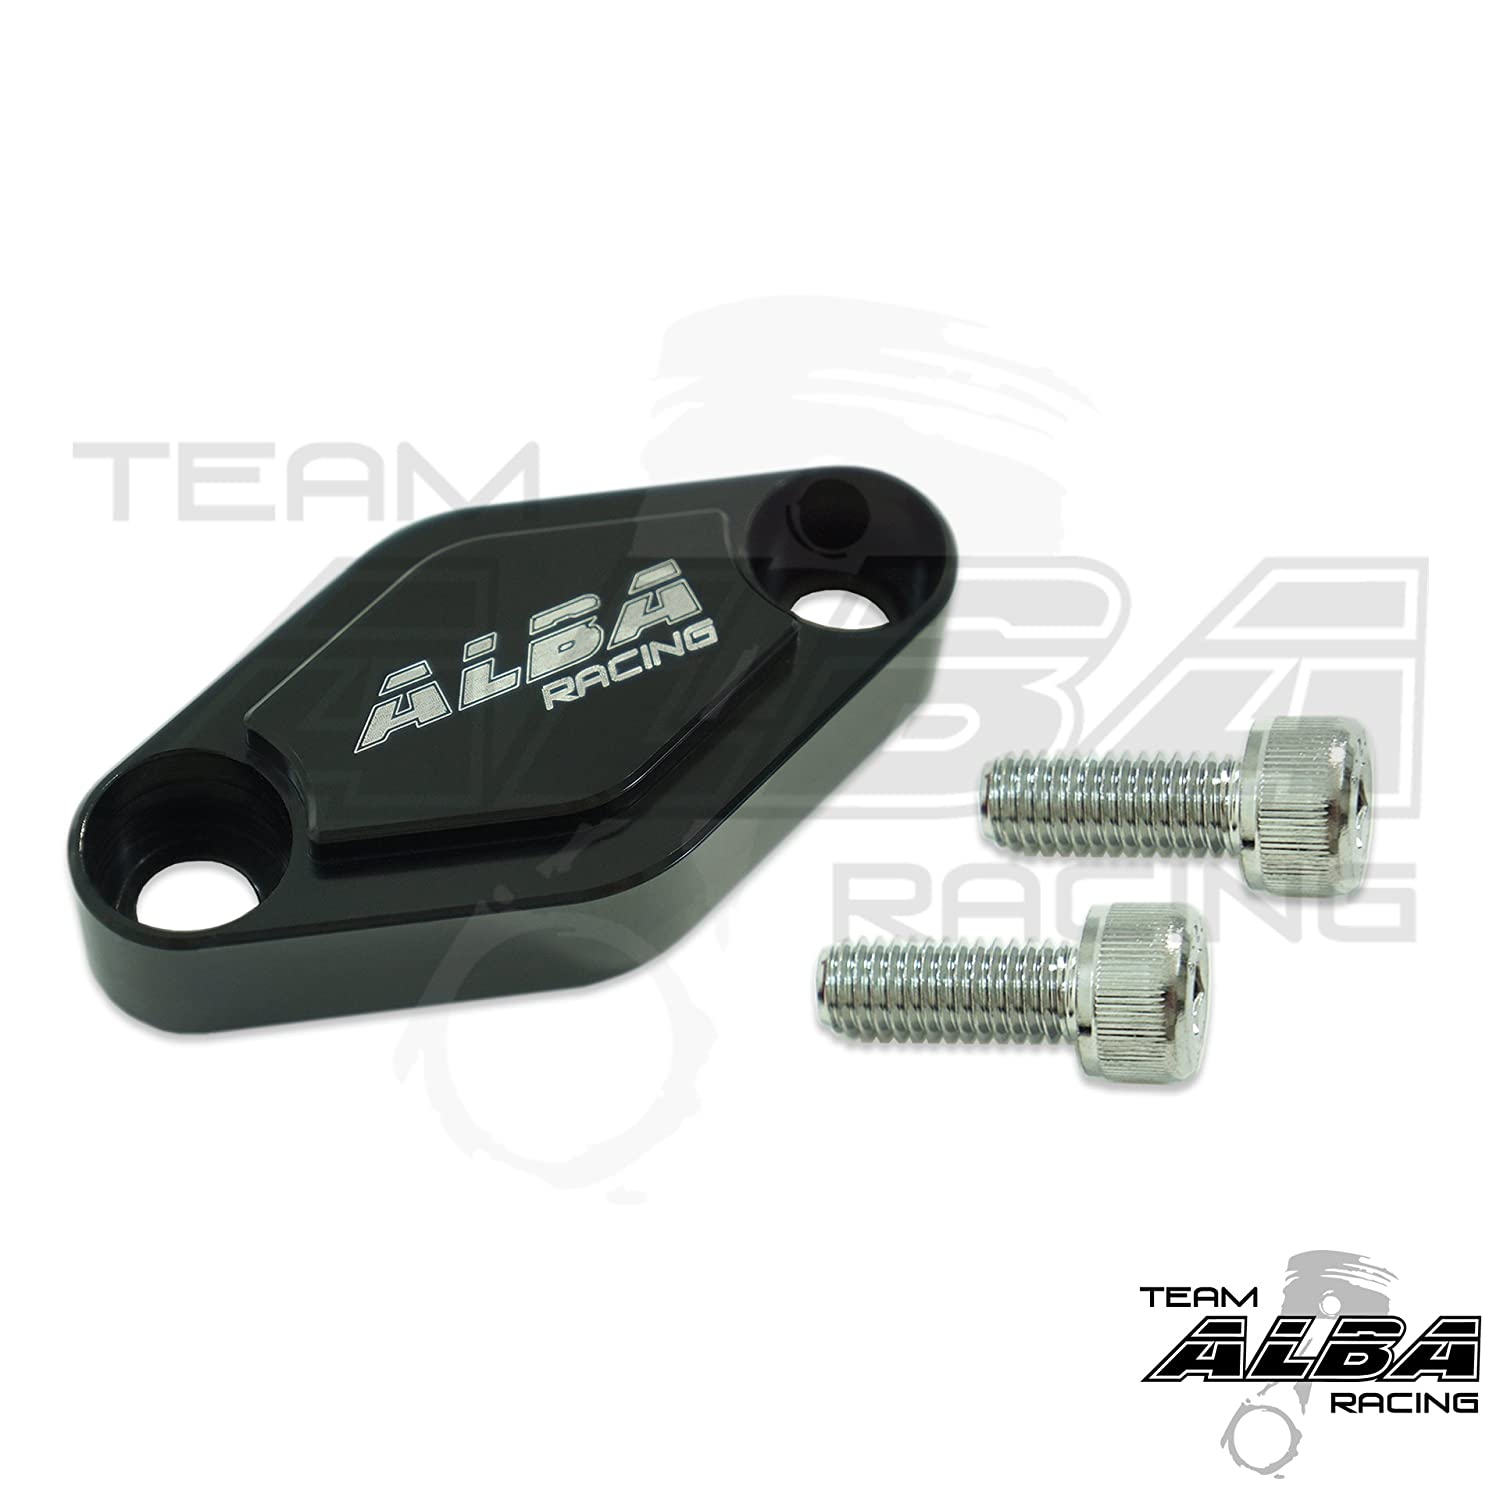 trx-450r-atv-parking-brake-block-off-black-all-years